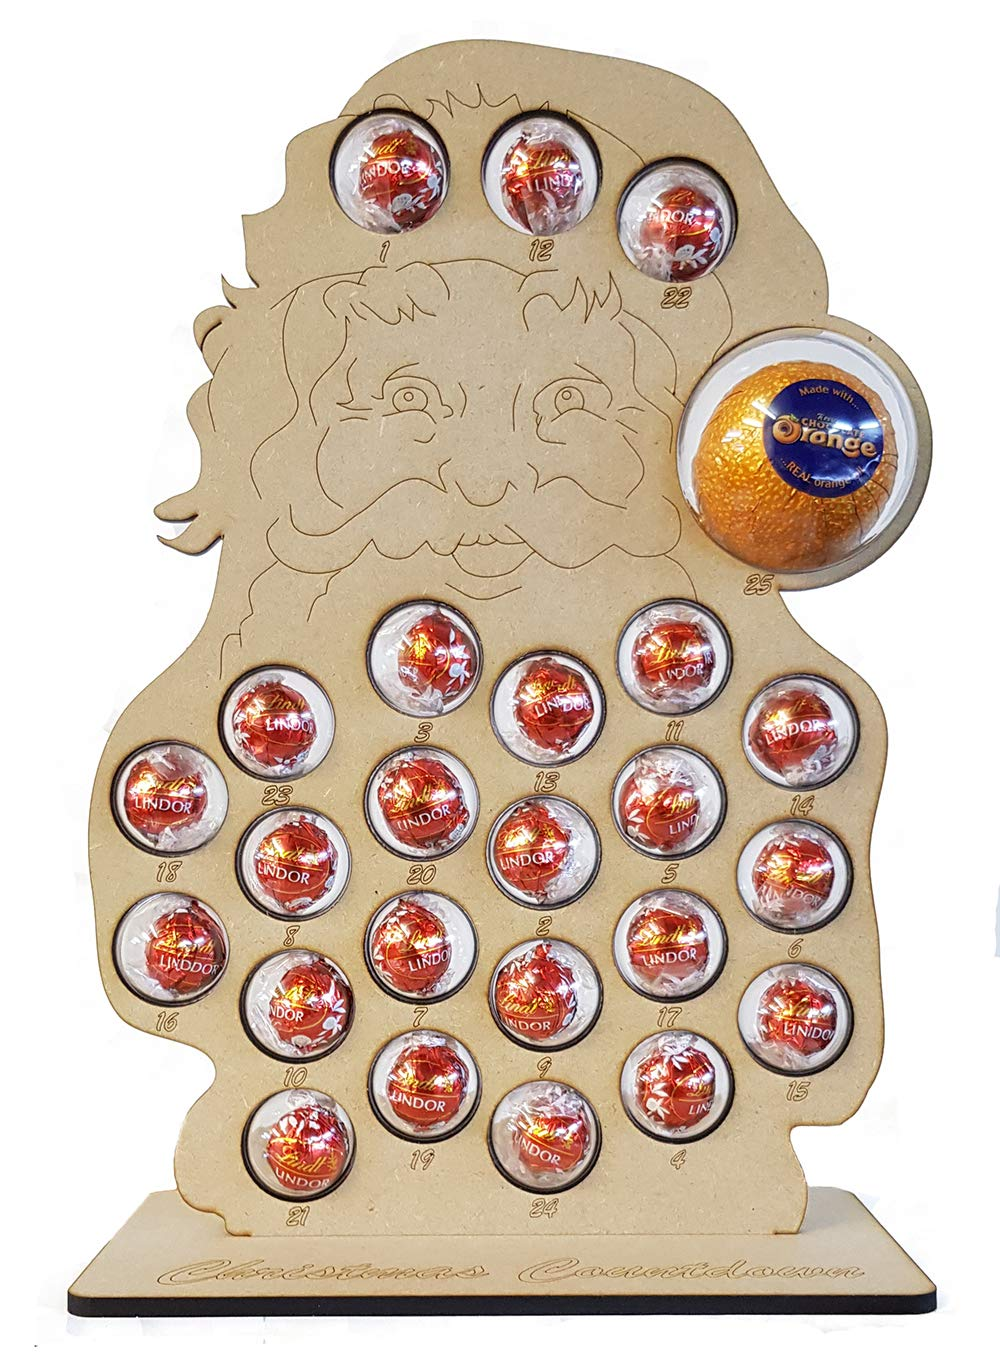 Mooseys Santa Claus Christmas Advent Calendar with Stand for Chocolate Orange & Lindt, includes Baubles (Countdown to Christmas) Mooseys Ltd